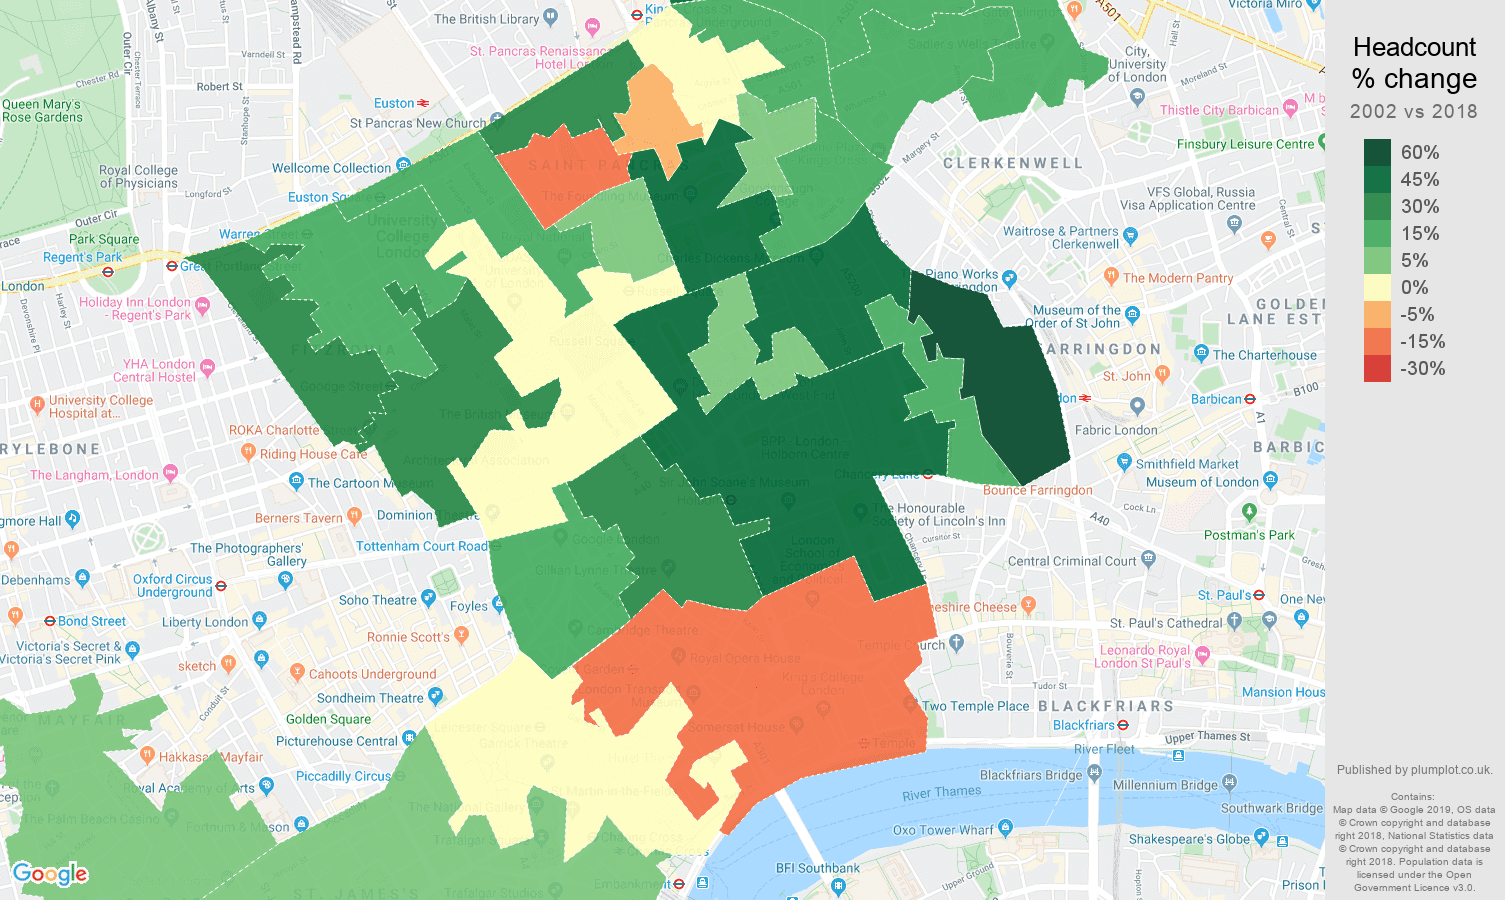 Western Central London headcount change map